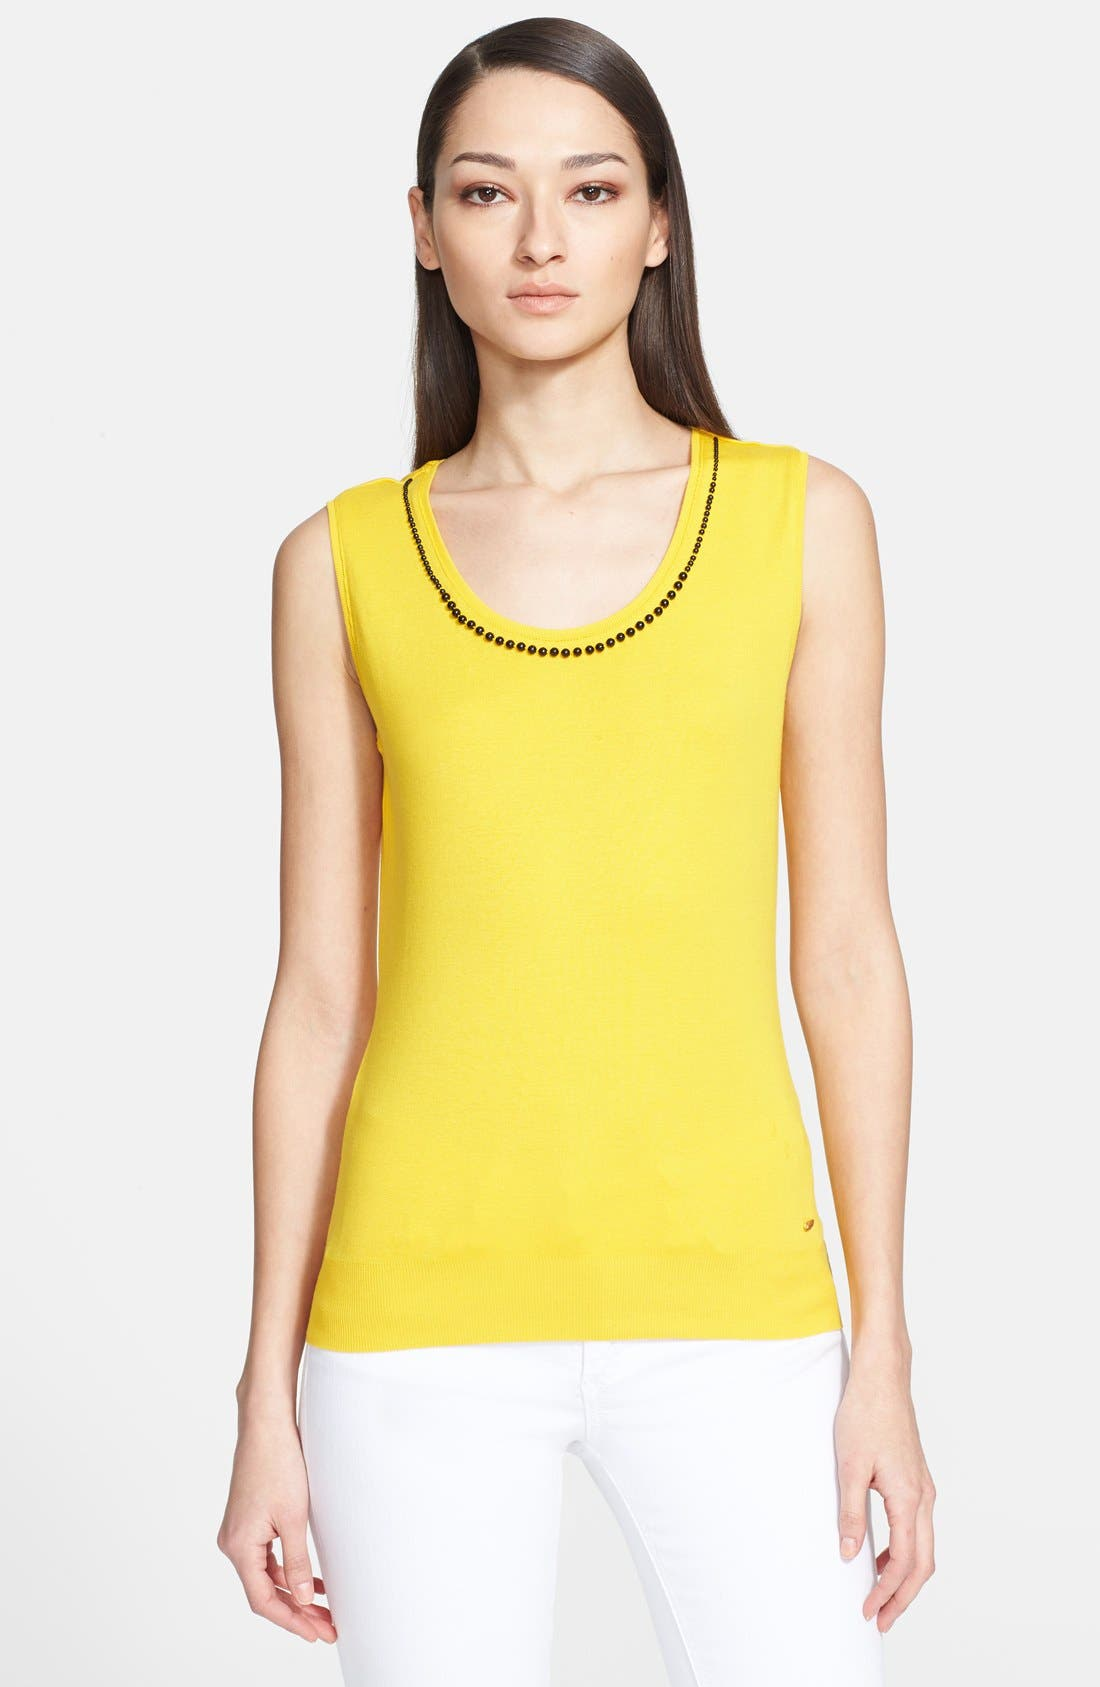 Main Image - ESCADA 'Eglal' Beaded Neck Knit Tank